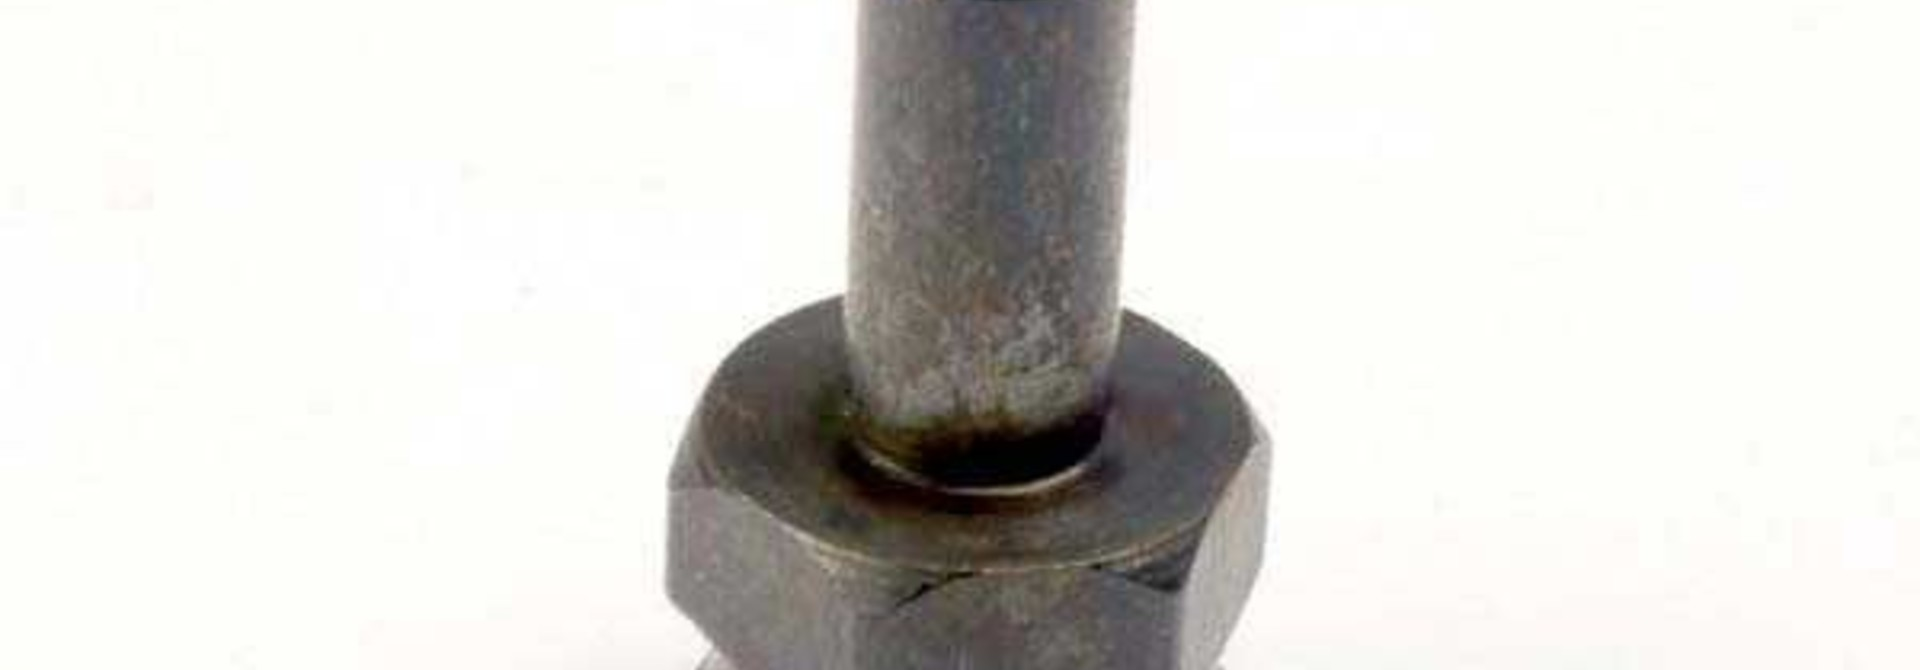 Adapter nut, clutch (not for use with IPS crankshafts), TRX4144